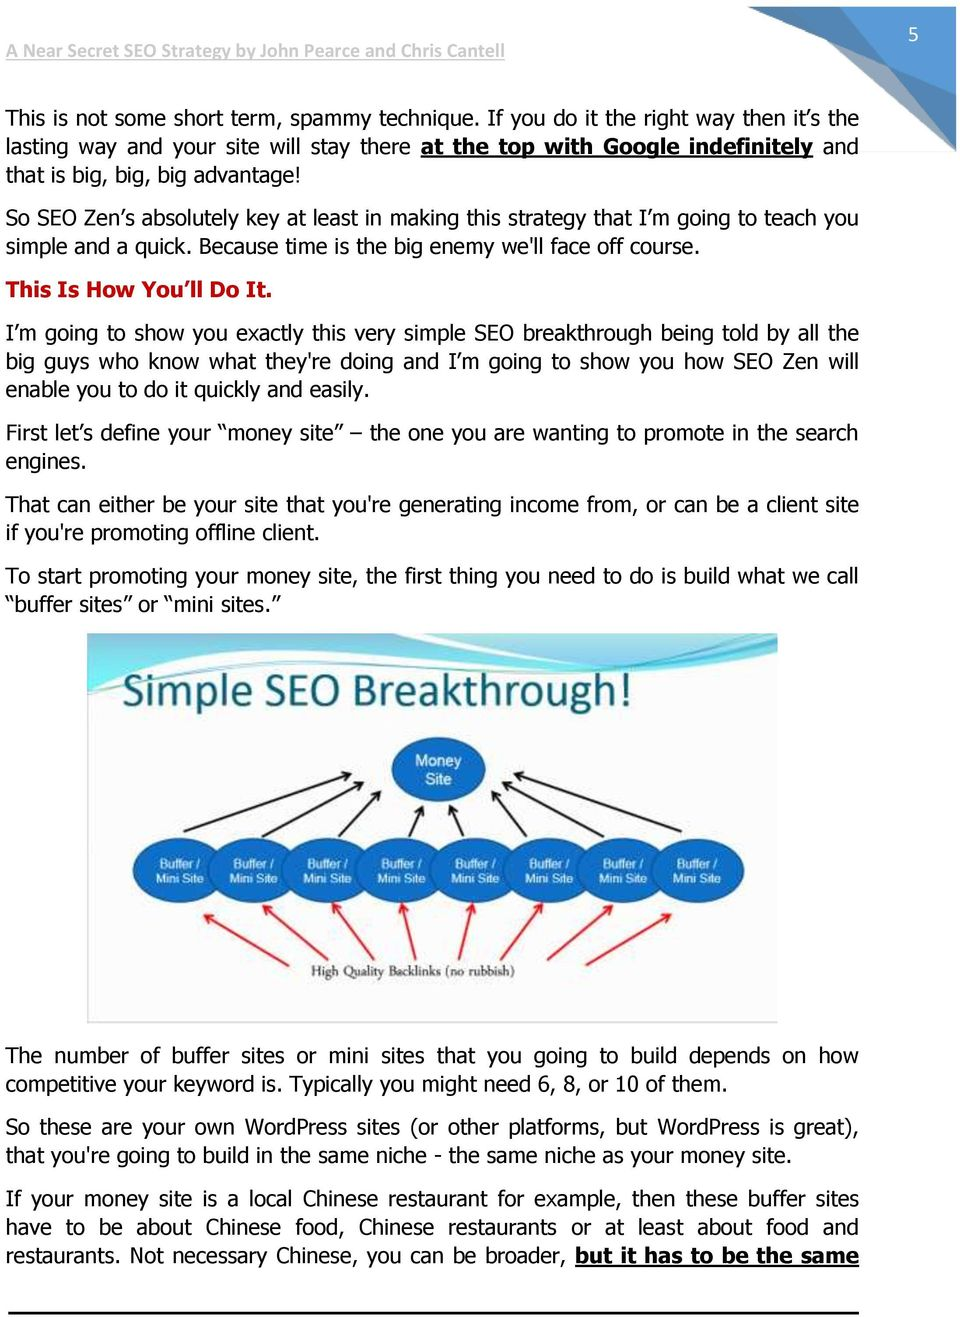 So SEO Zen s absolutely key at least in making this strategy that I m going to teach you simple and a quick. Because time is the big enemy we'll face off course. This Is How You ll Do It.